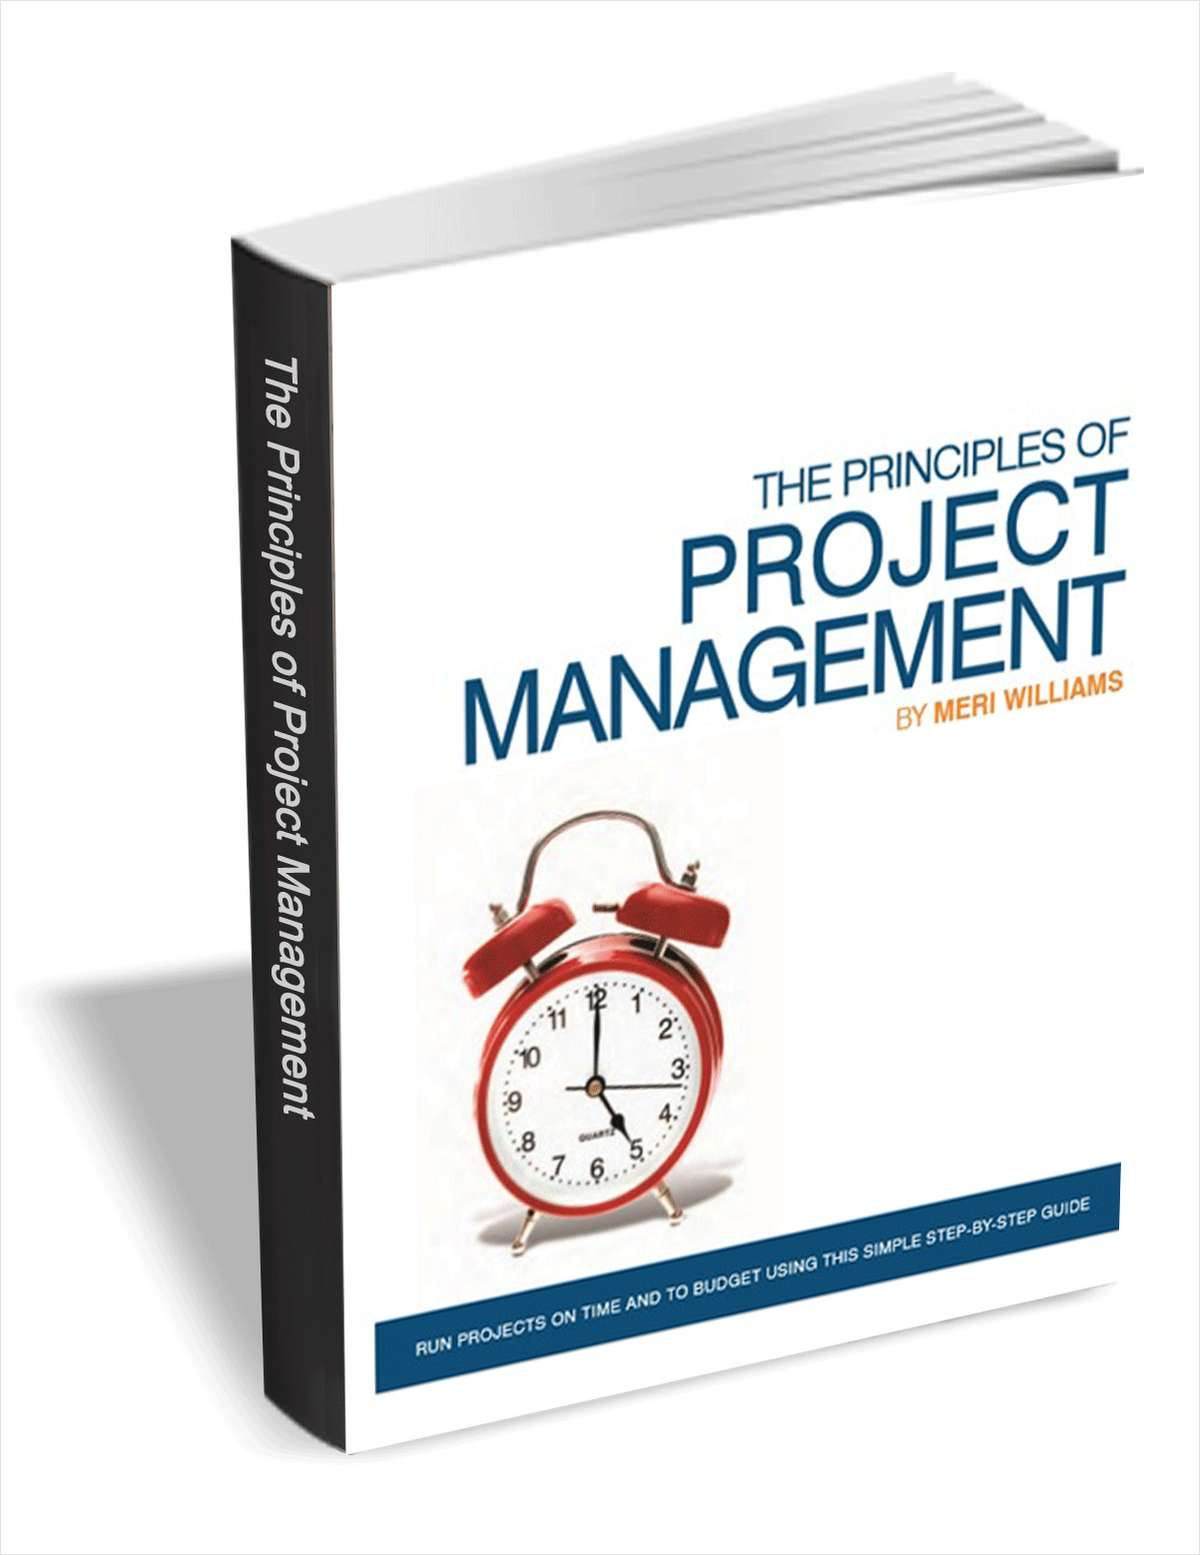 The Principles Of Project Management ($29 Value FREE For a Limited Time)